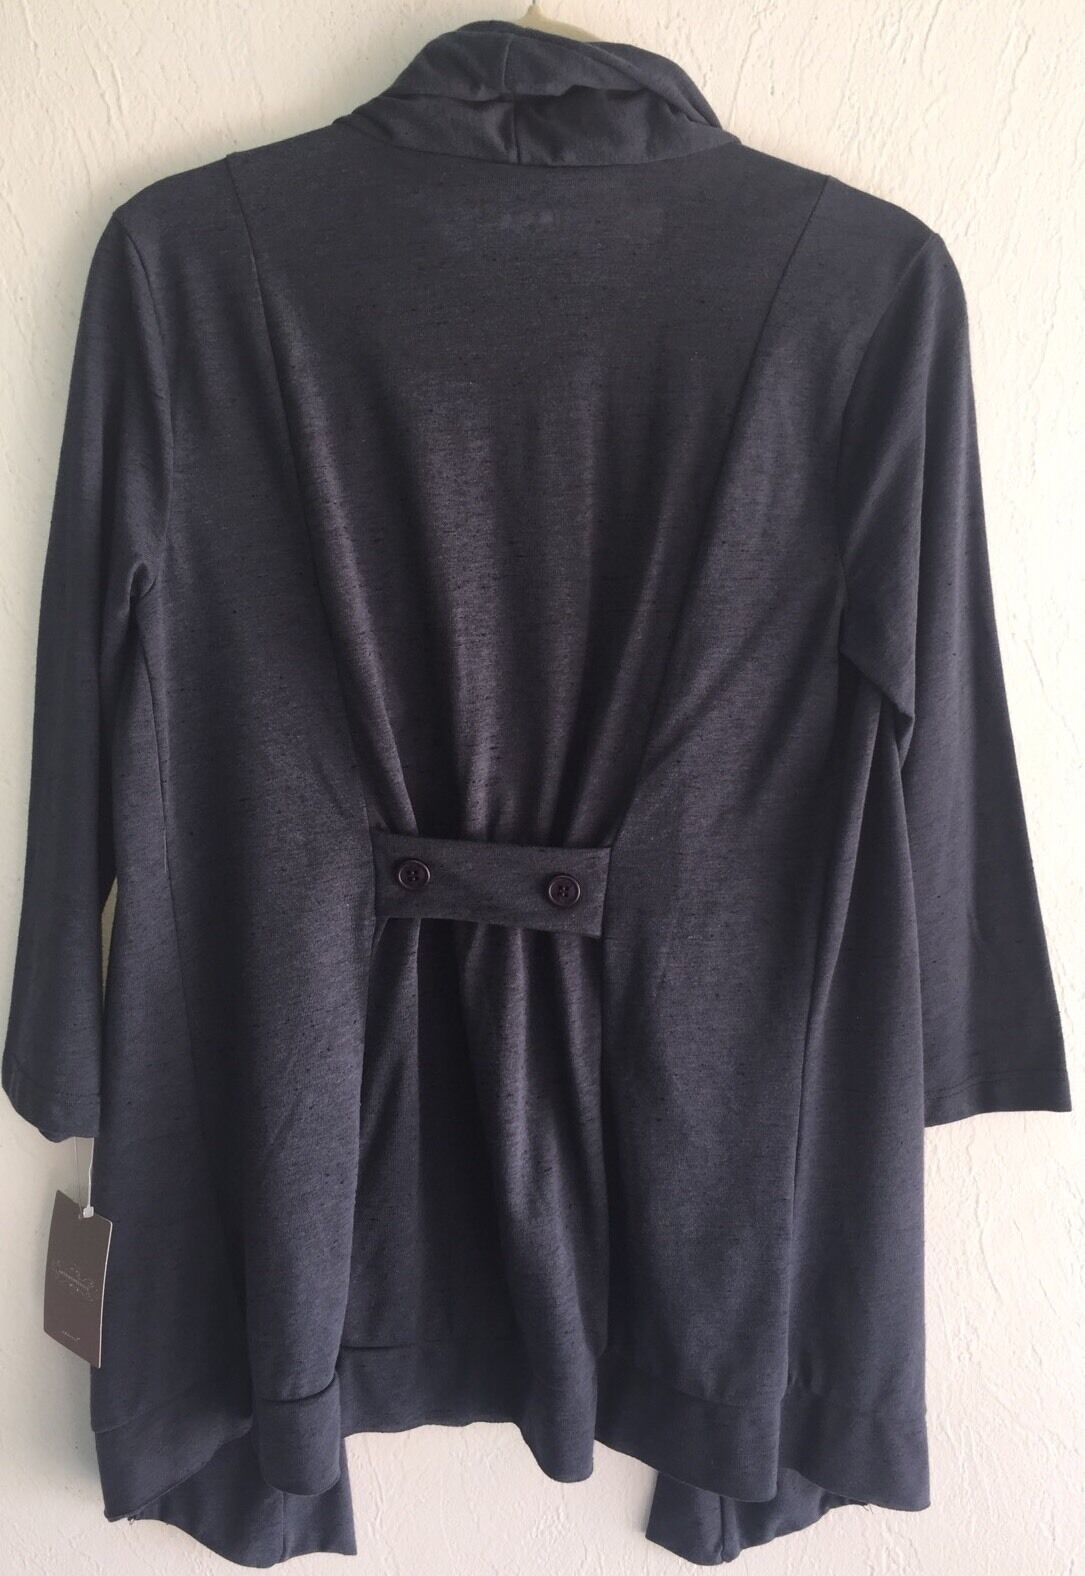 NEW Anthropologie Anthropologie Anthropologie Three Dots Buoyant Bunches Cardigan Topper Small S NWT Navy 6f2417